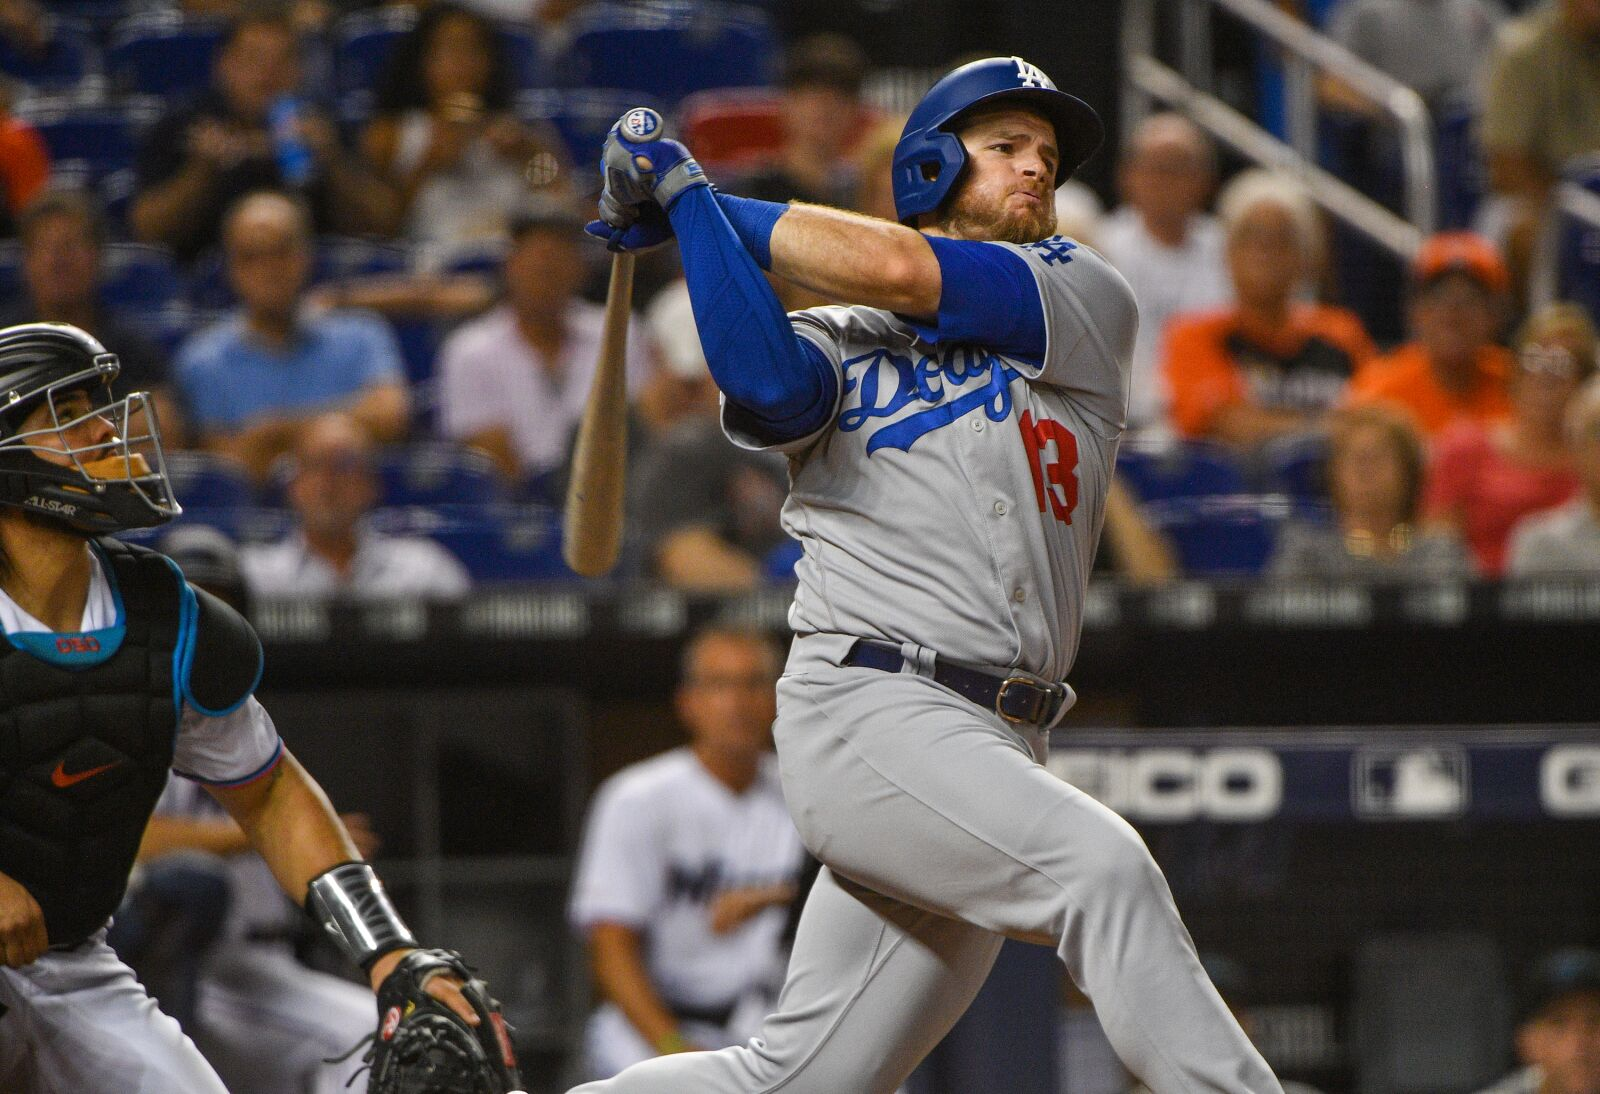 Dodgers: Max Muncy accomplishes feat last done by Shawn Green